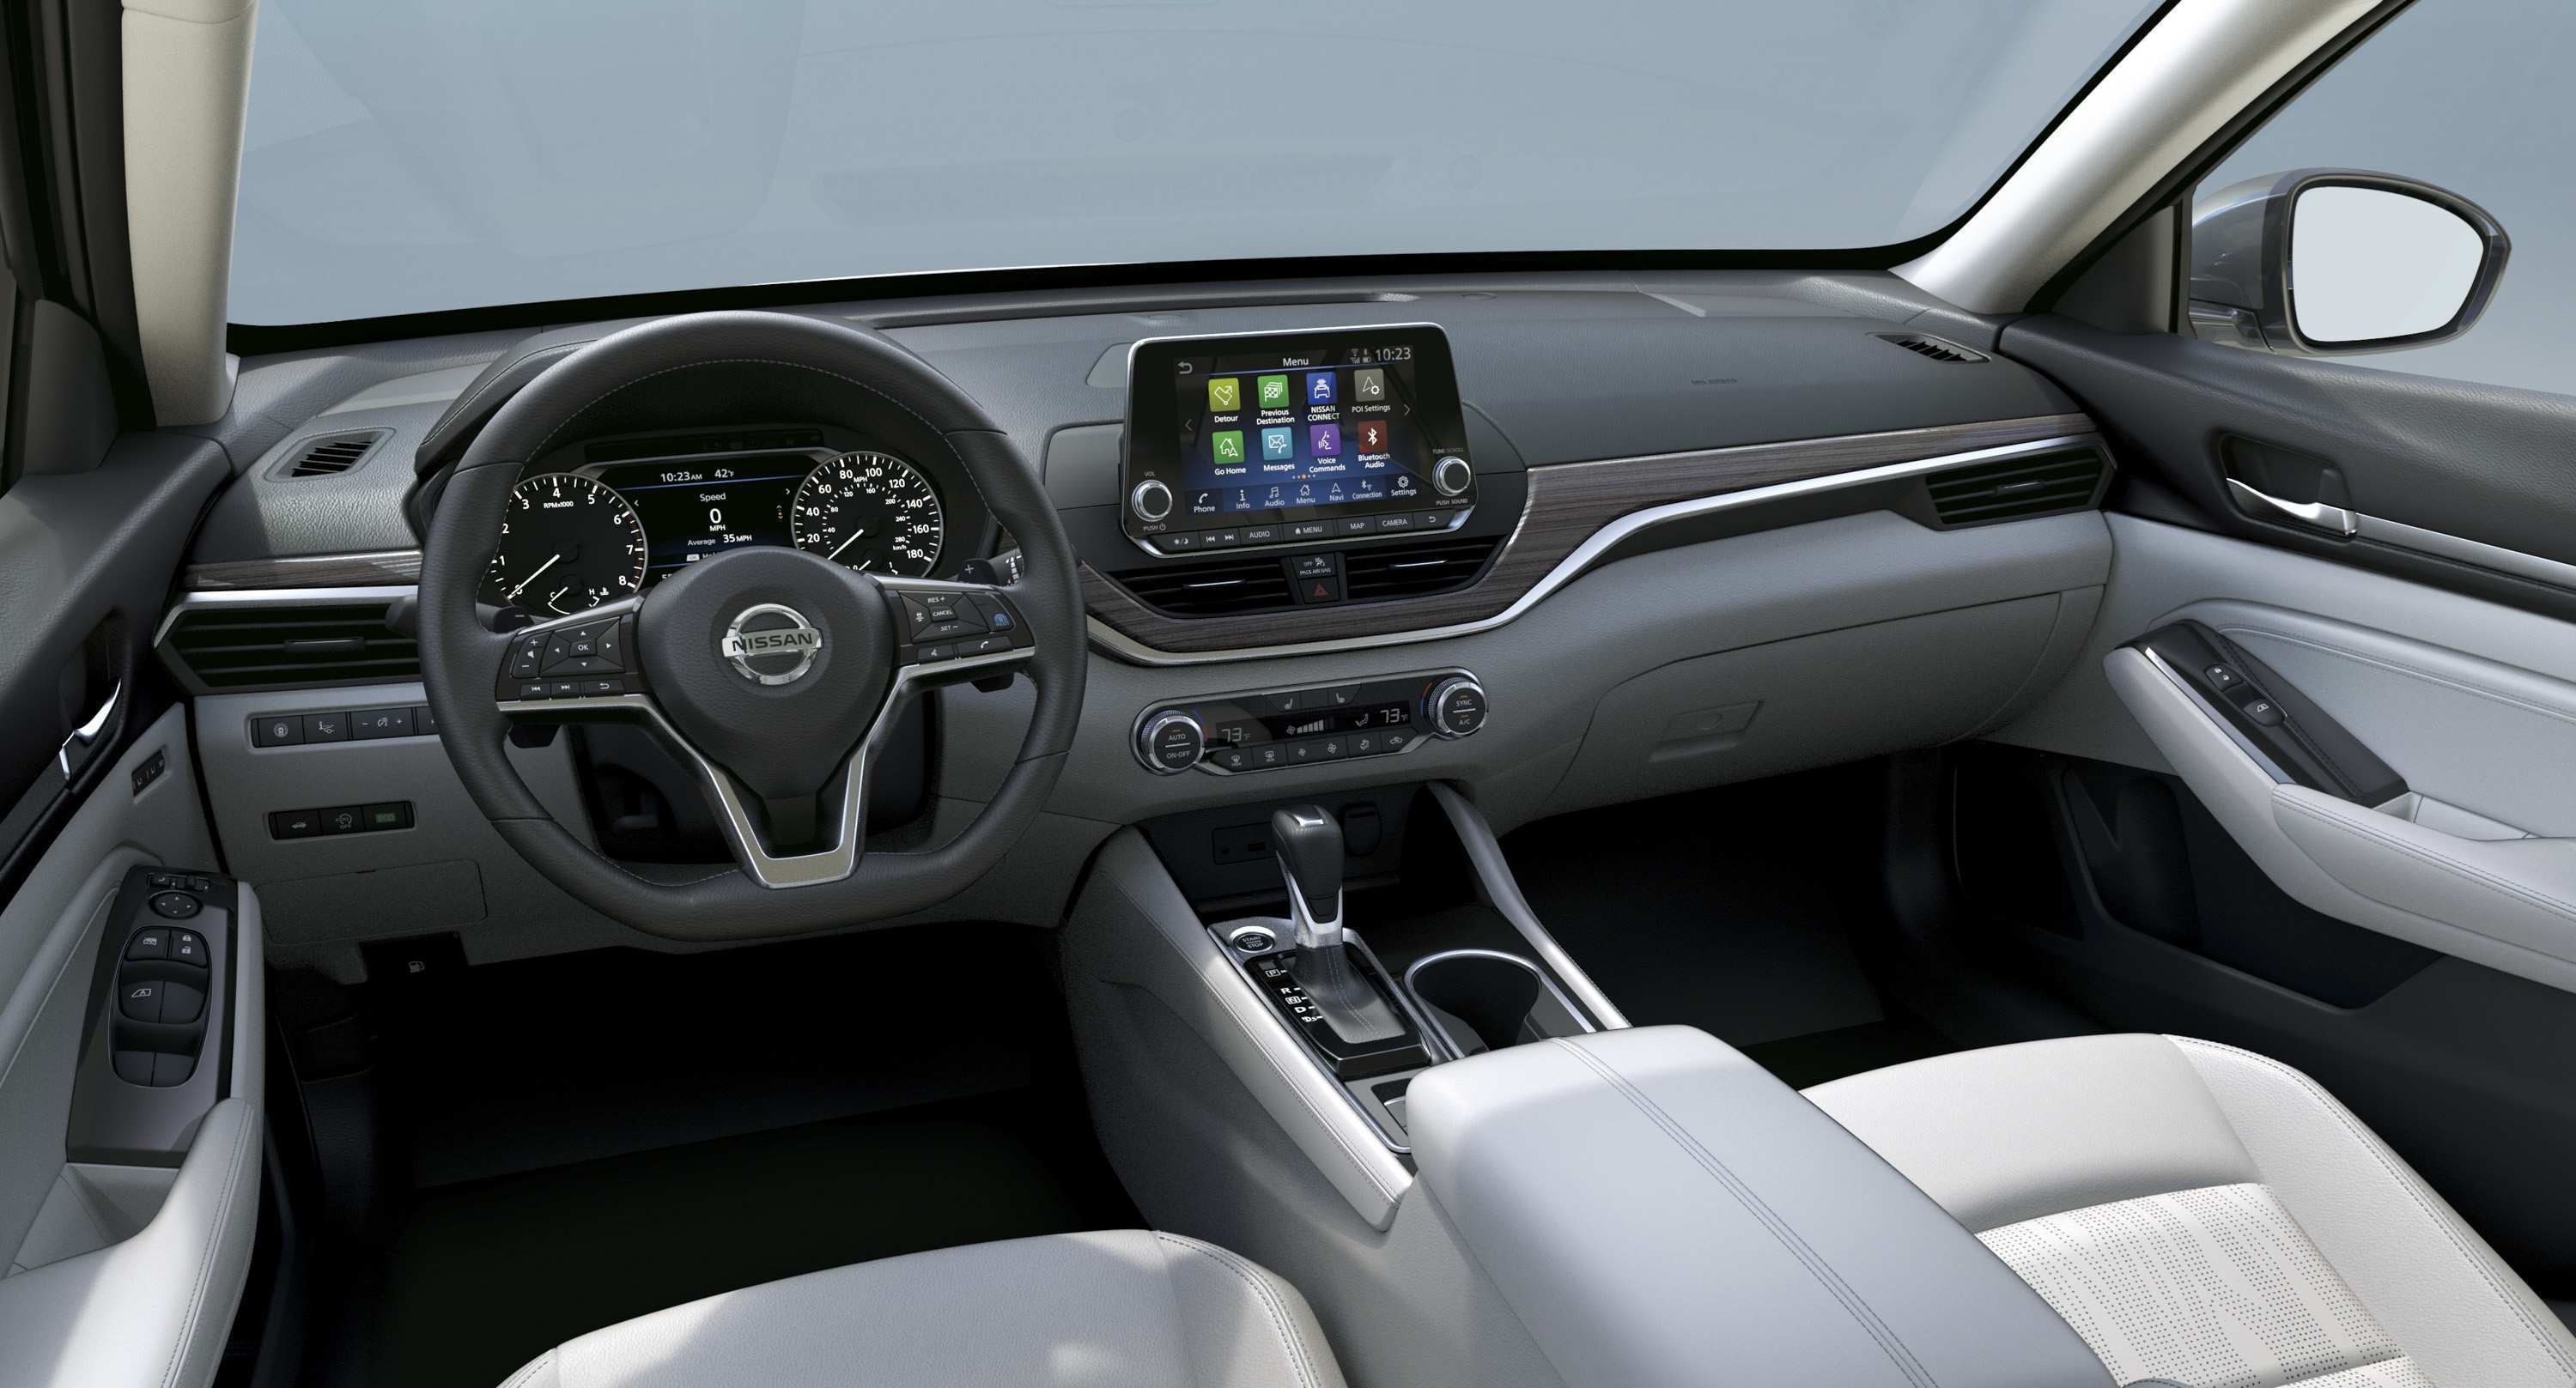 16 New The 2019 Nissan Altima Interior Redesign And Concept History with The 2019 Nissan Altima Interior Redesign And Concept